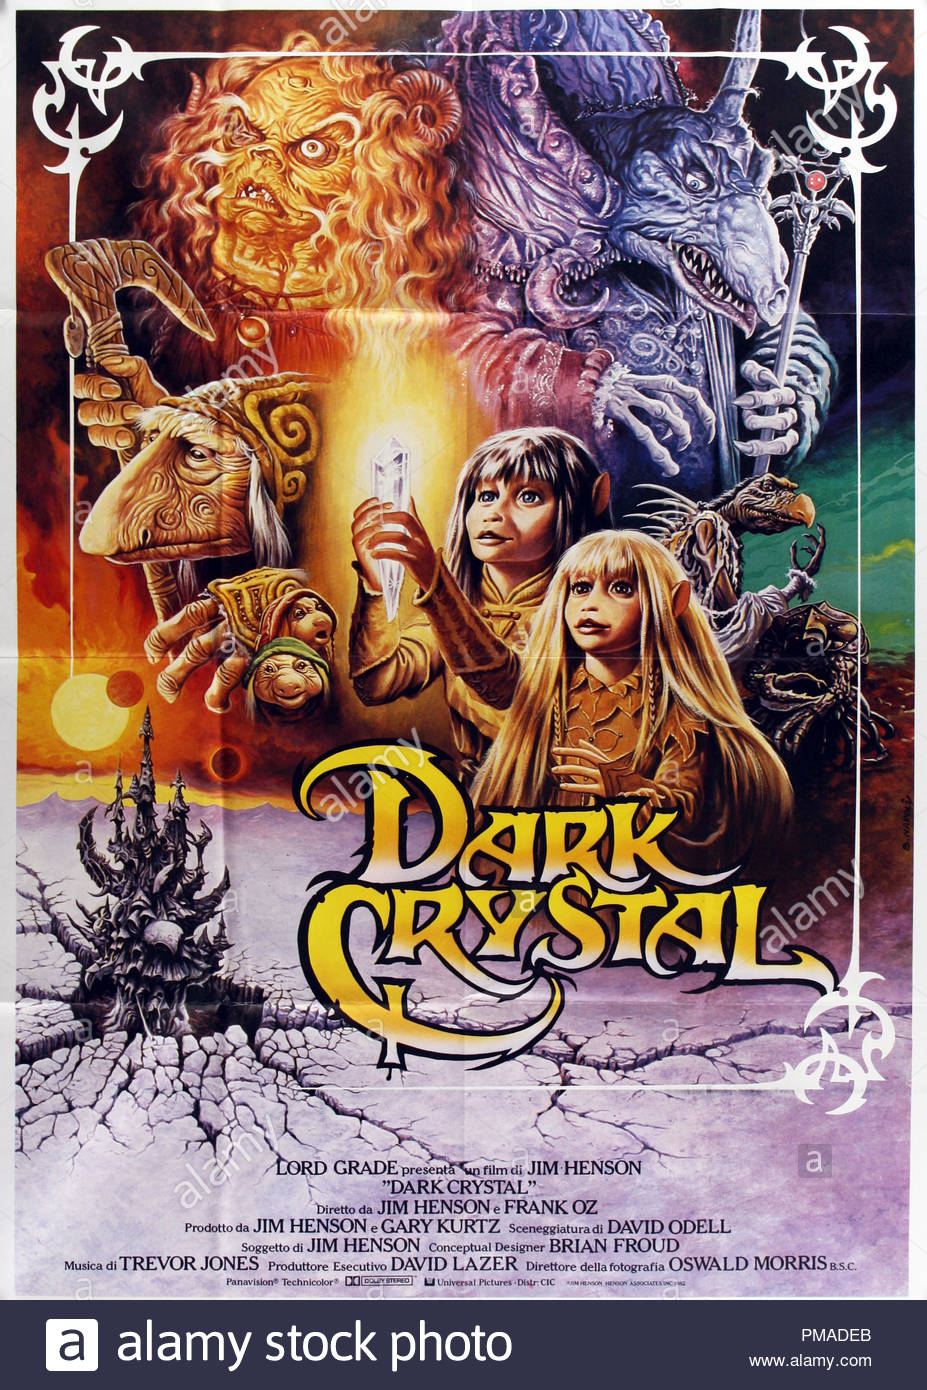 the-dark-crystal-1982-universal-pictures-file-reference-32509-106tha-PMADEB